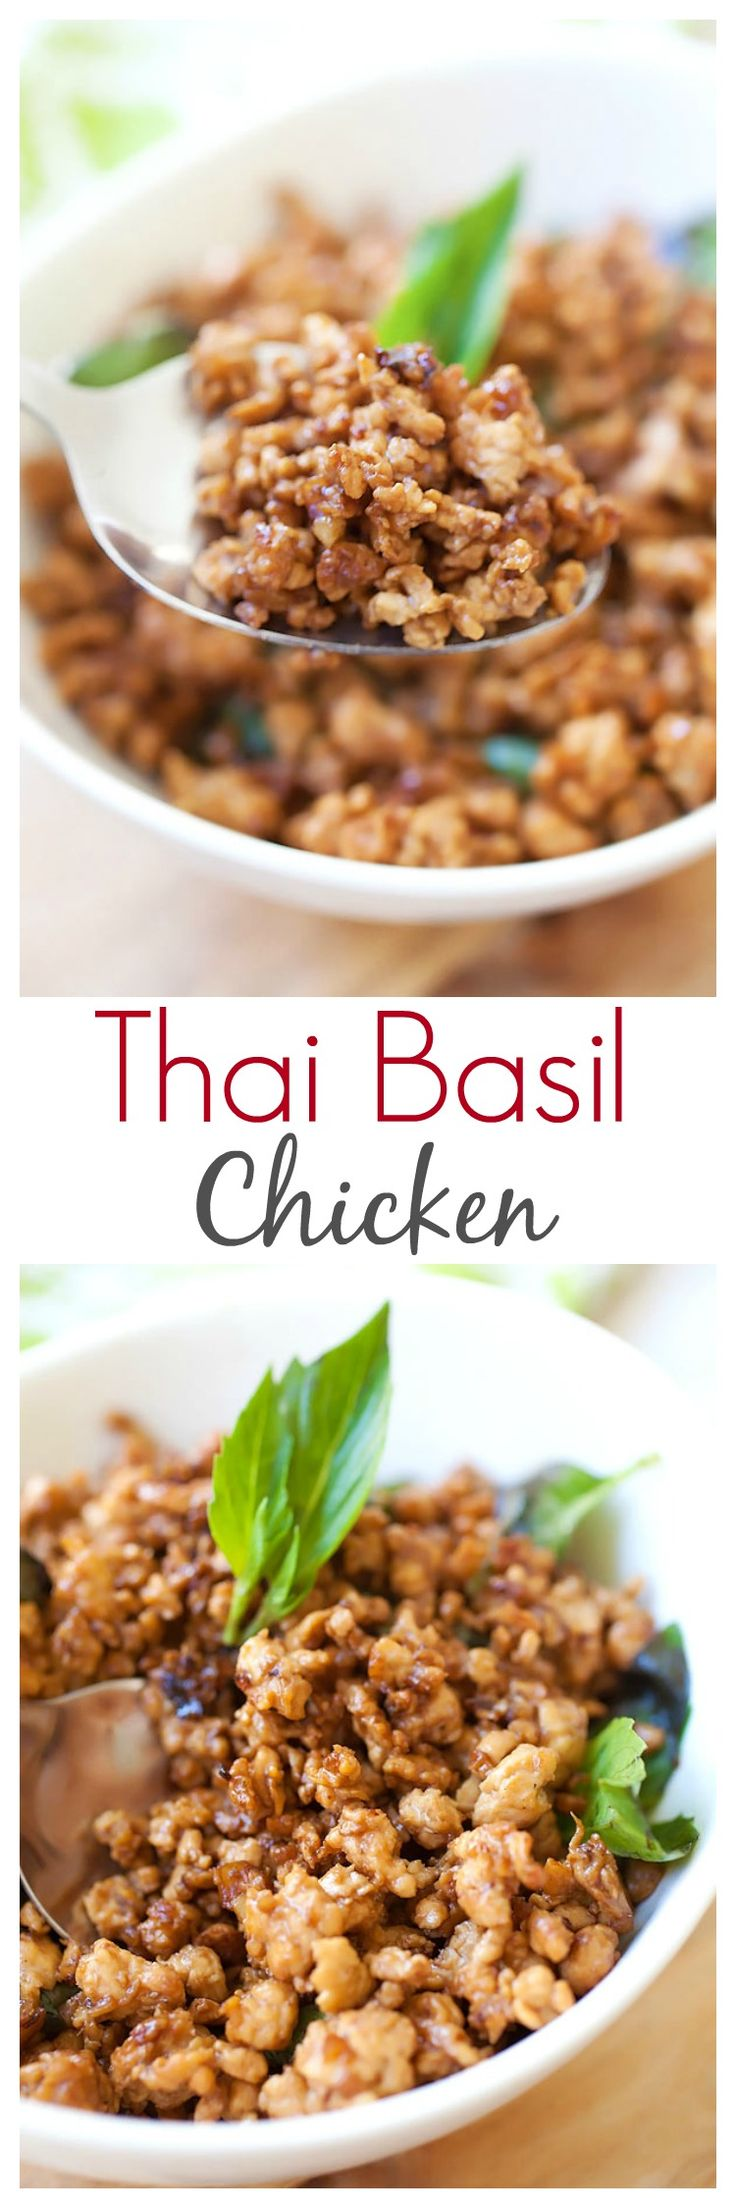 Thai Basil Chicken  C made with ground chicken  basil leaves  and chilies  Basil chicken is great with rice and this recipe is super easy and authentic   rasamalaysia com